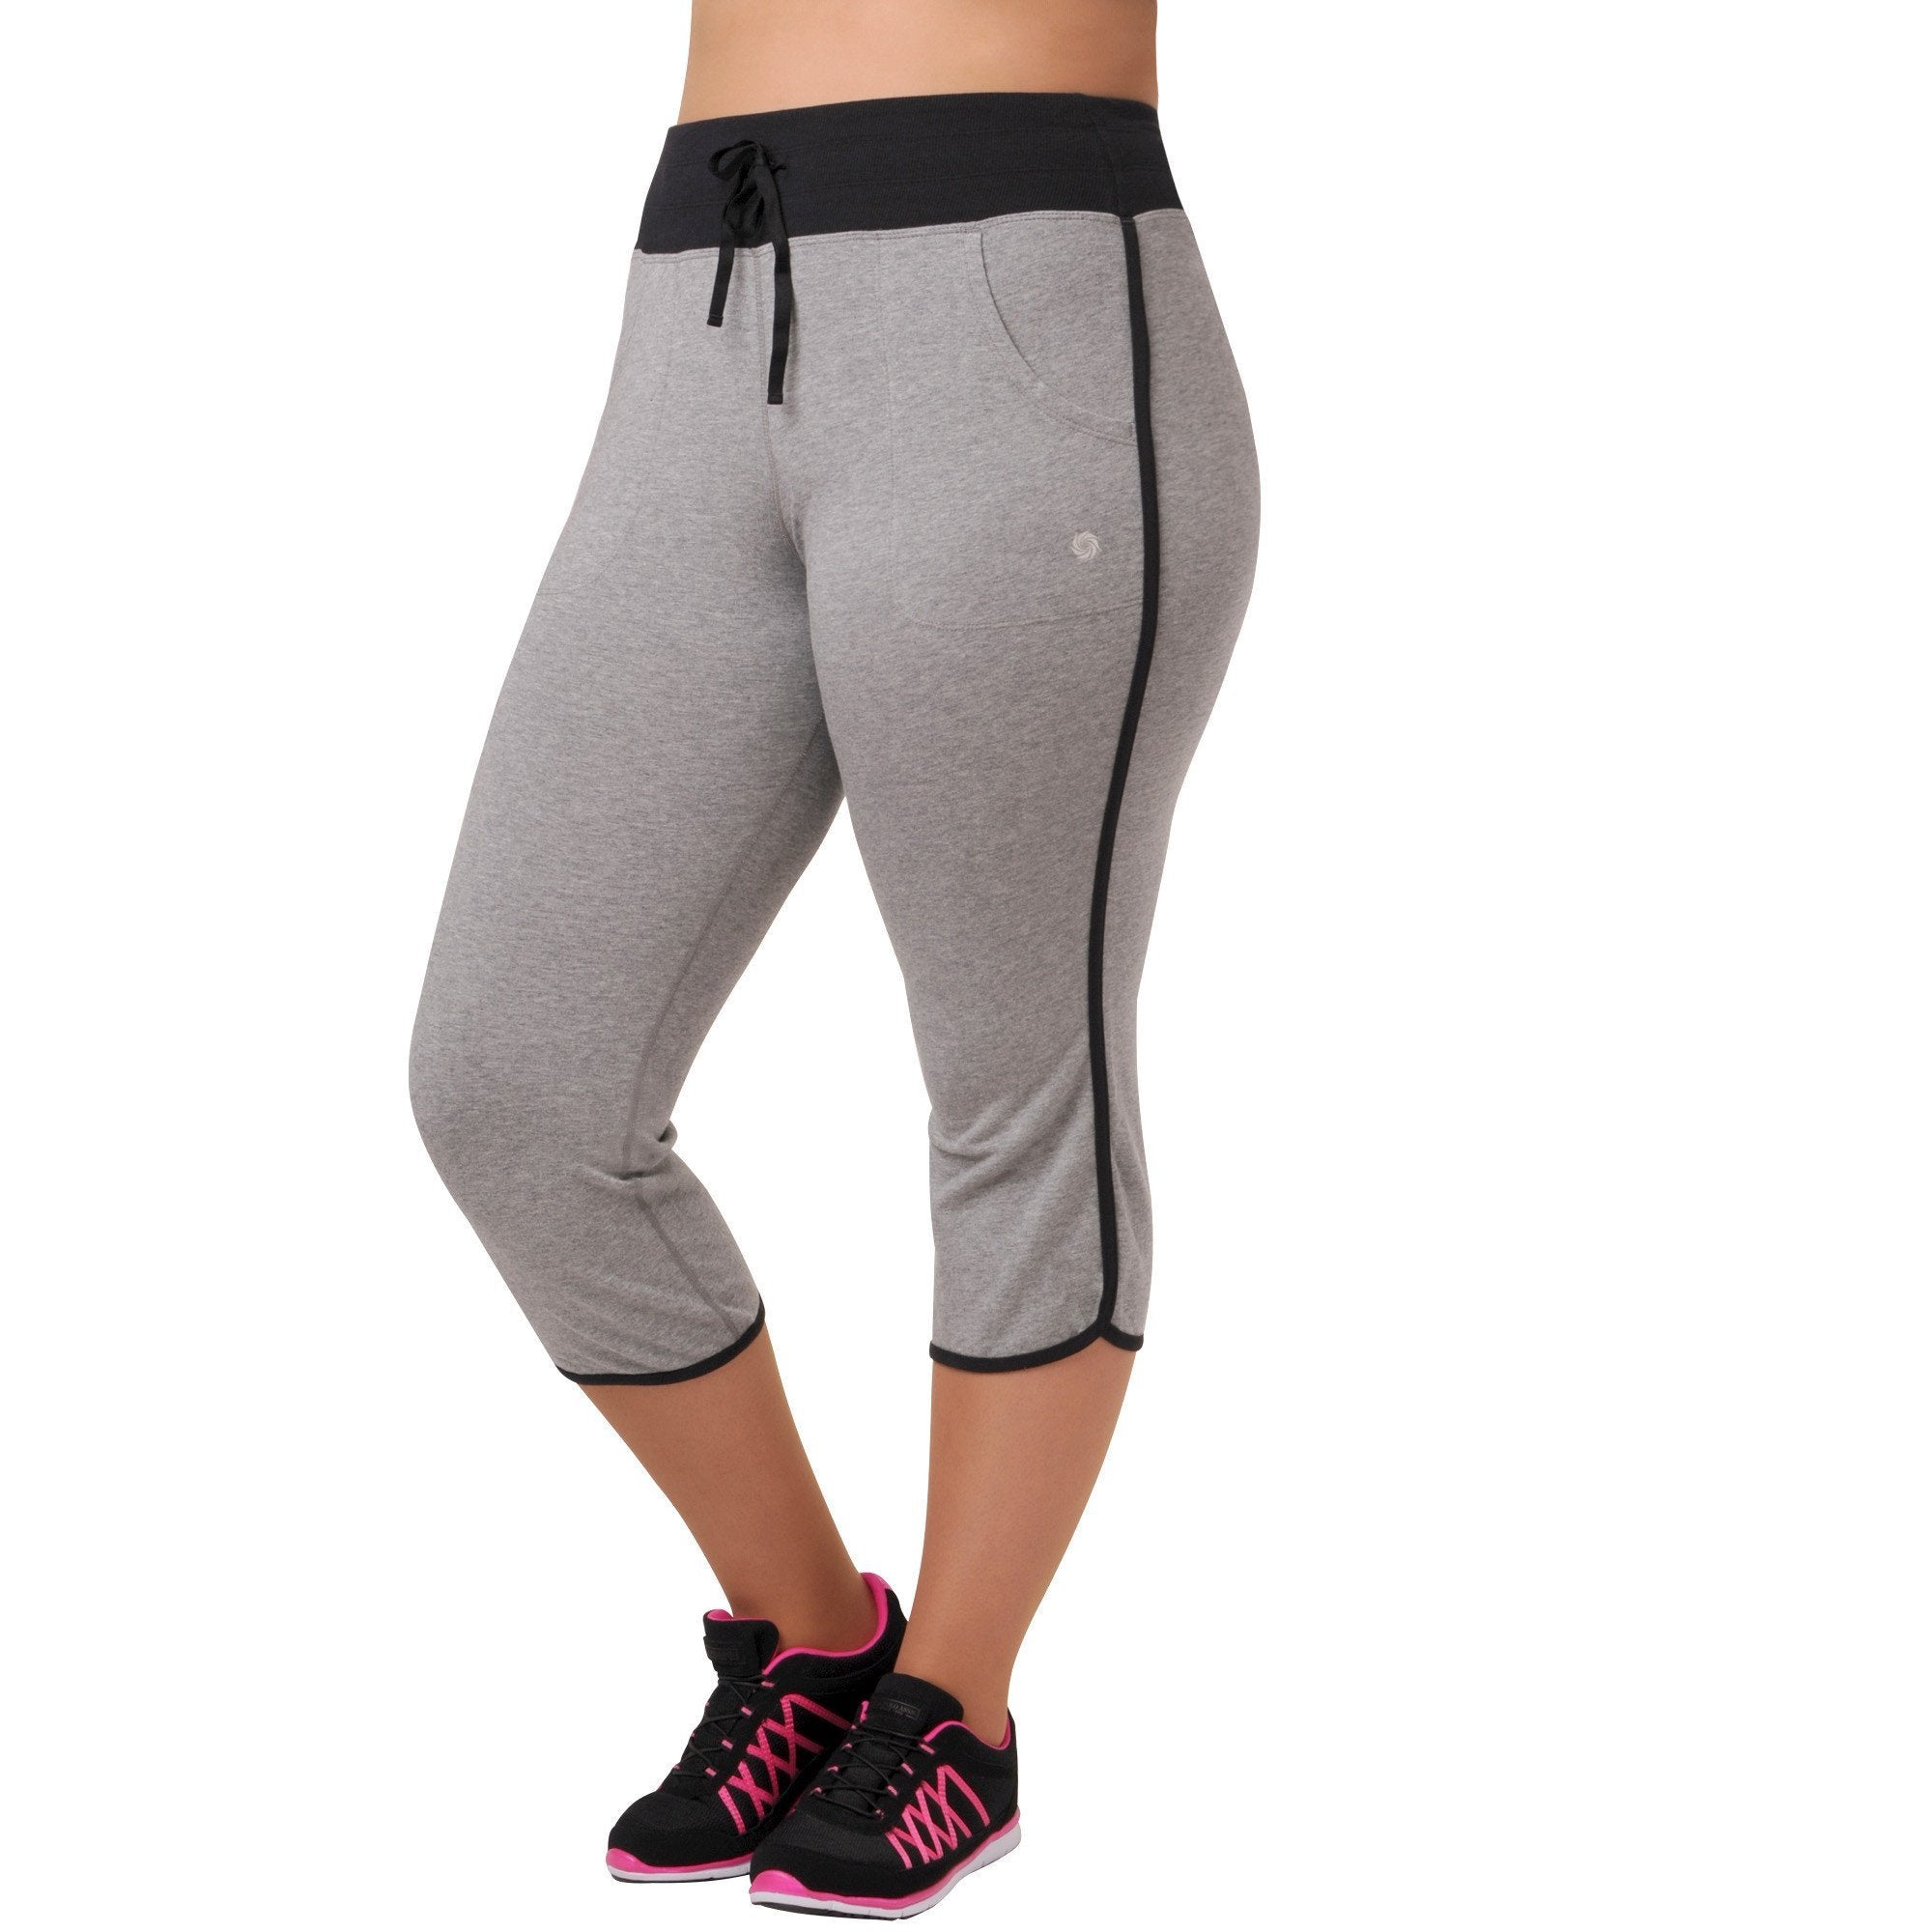 Olivia Capri - Rainbeau Curves, 14/16 / Heather Grey, activewear, athleisure, fitness, workout, gym, performance, womens, ladies, plus size, curvy, full figured, spandex, cotton, polyester - 1